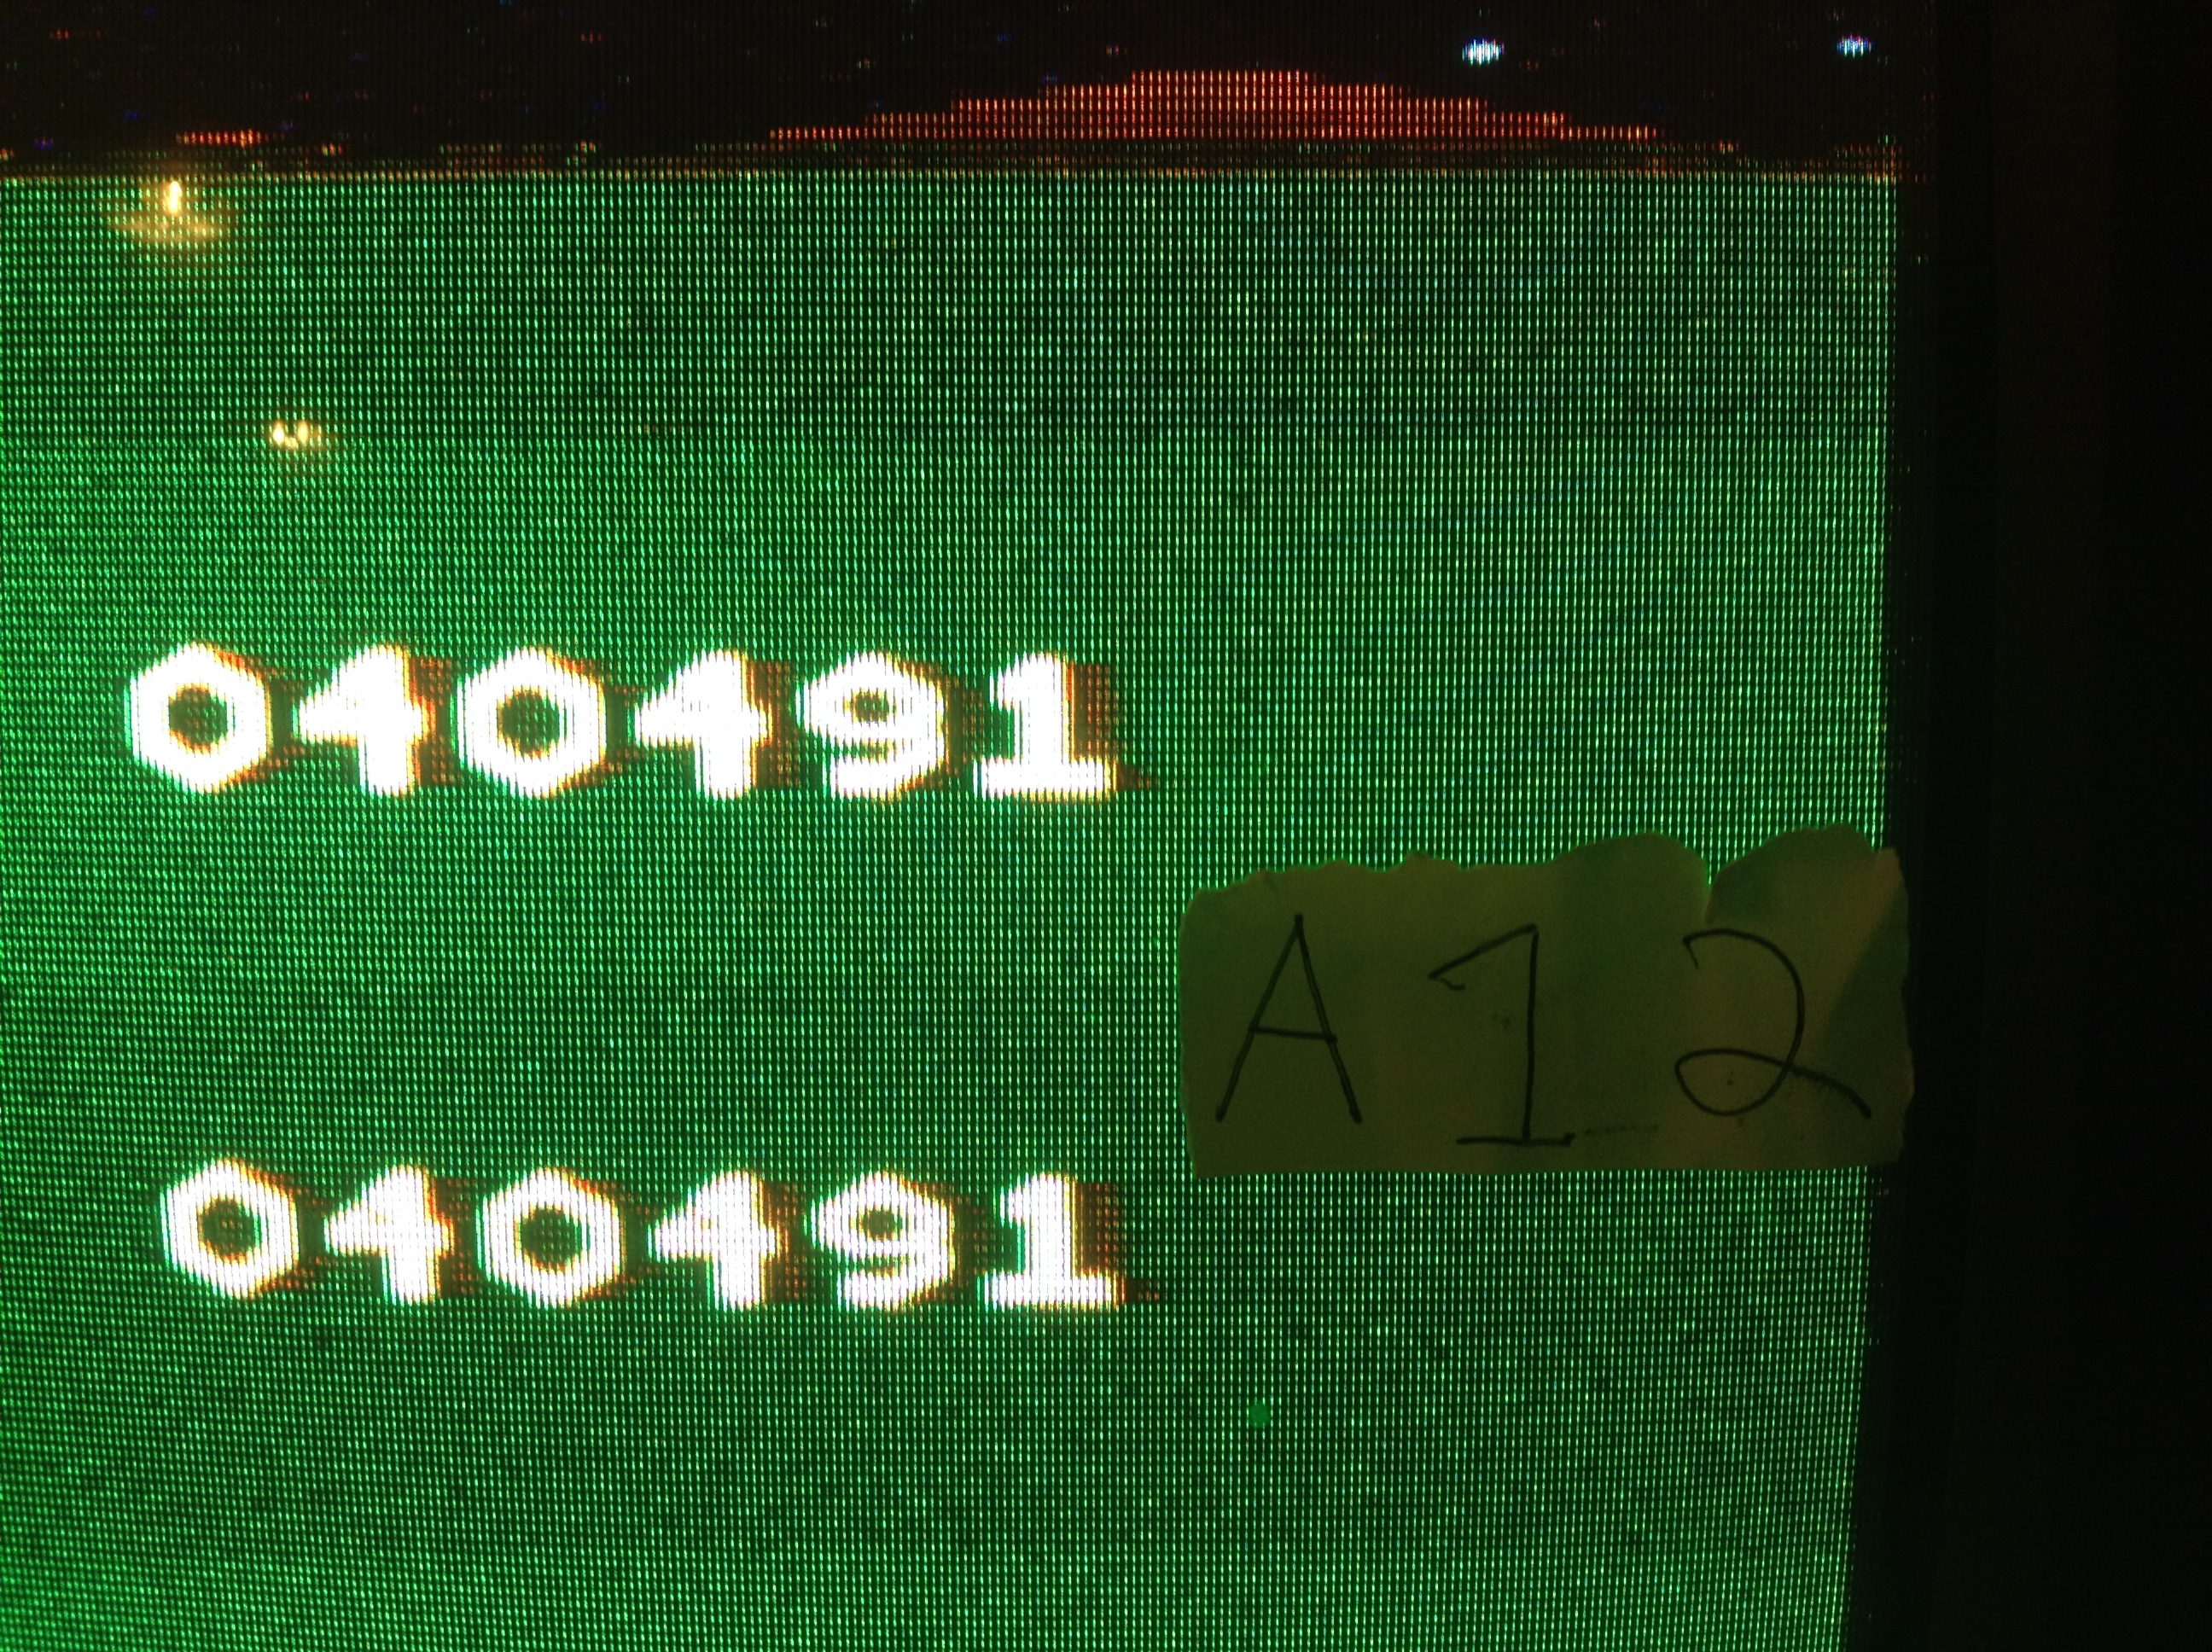 Arrowhead12: Rabbit Transit (Atari 2600 Novice/B) 40,491 points on 2018-10-24 01:54:58